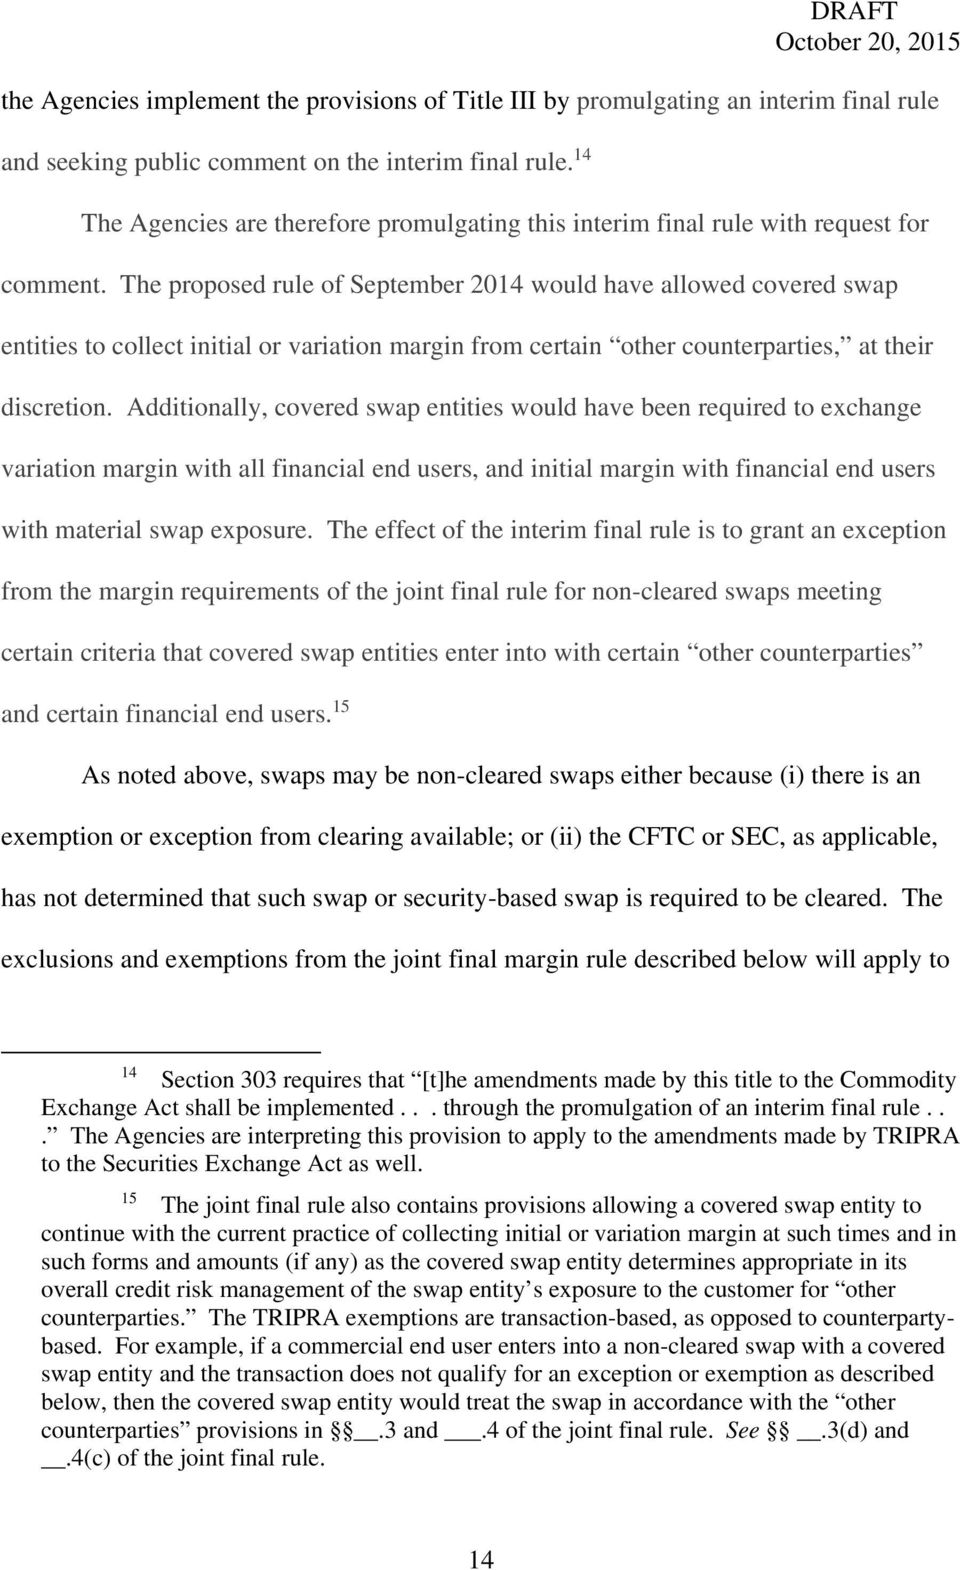 The proposed rule of September 2014 would have allowed covered swap entities to collect initial or variation margin from certain other counterparties, at their discretion.